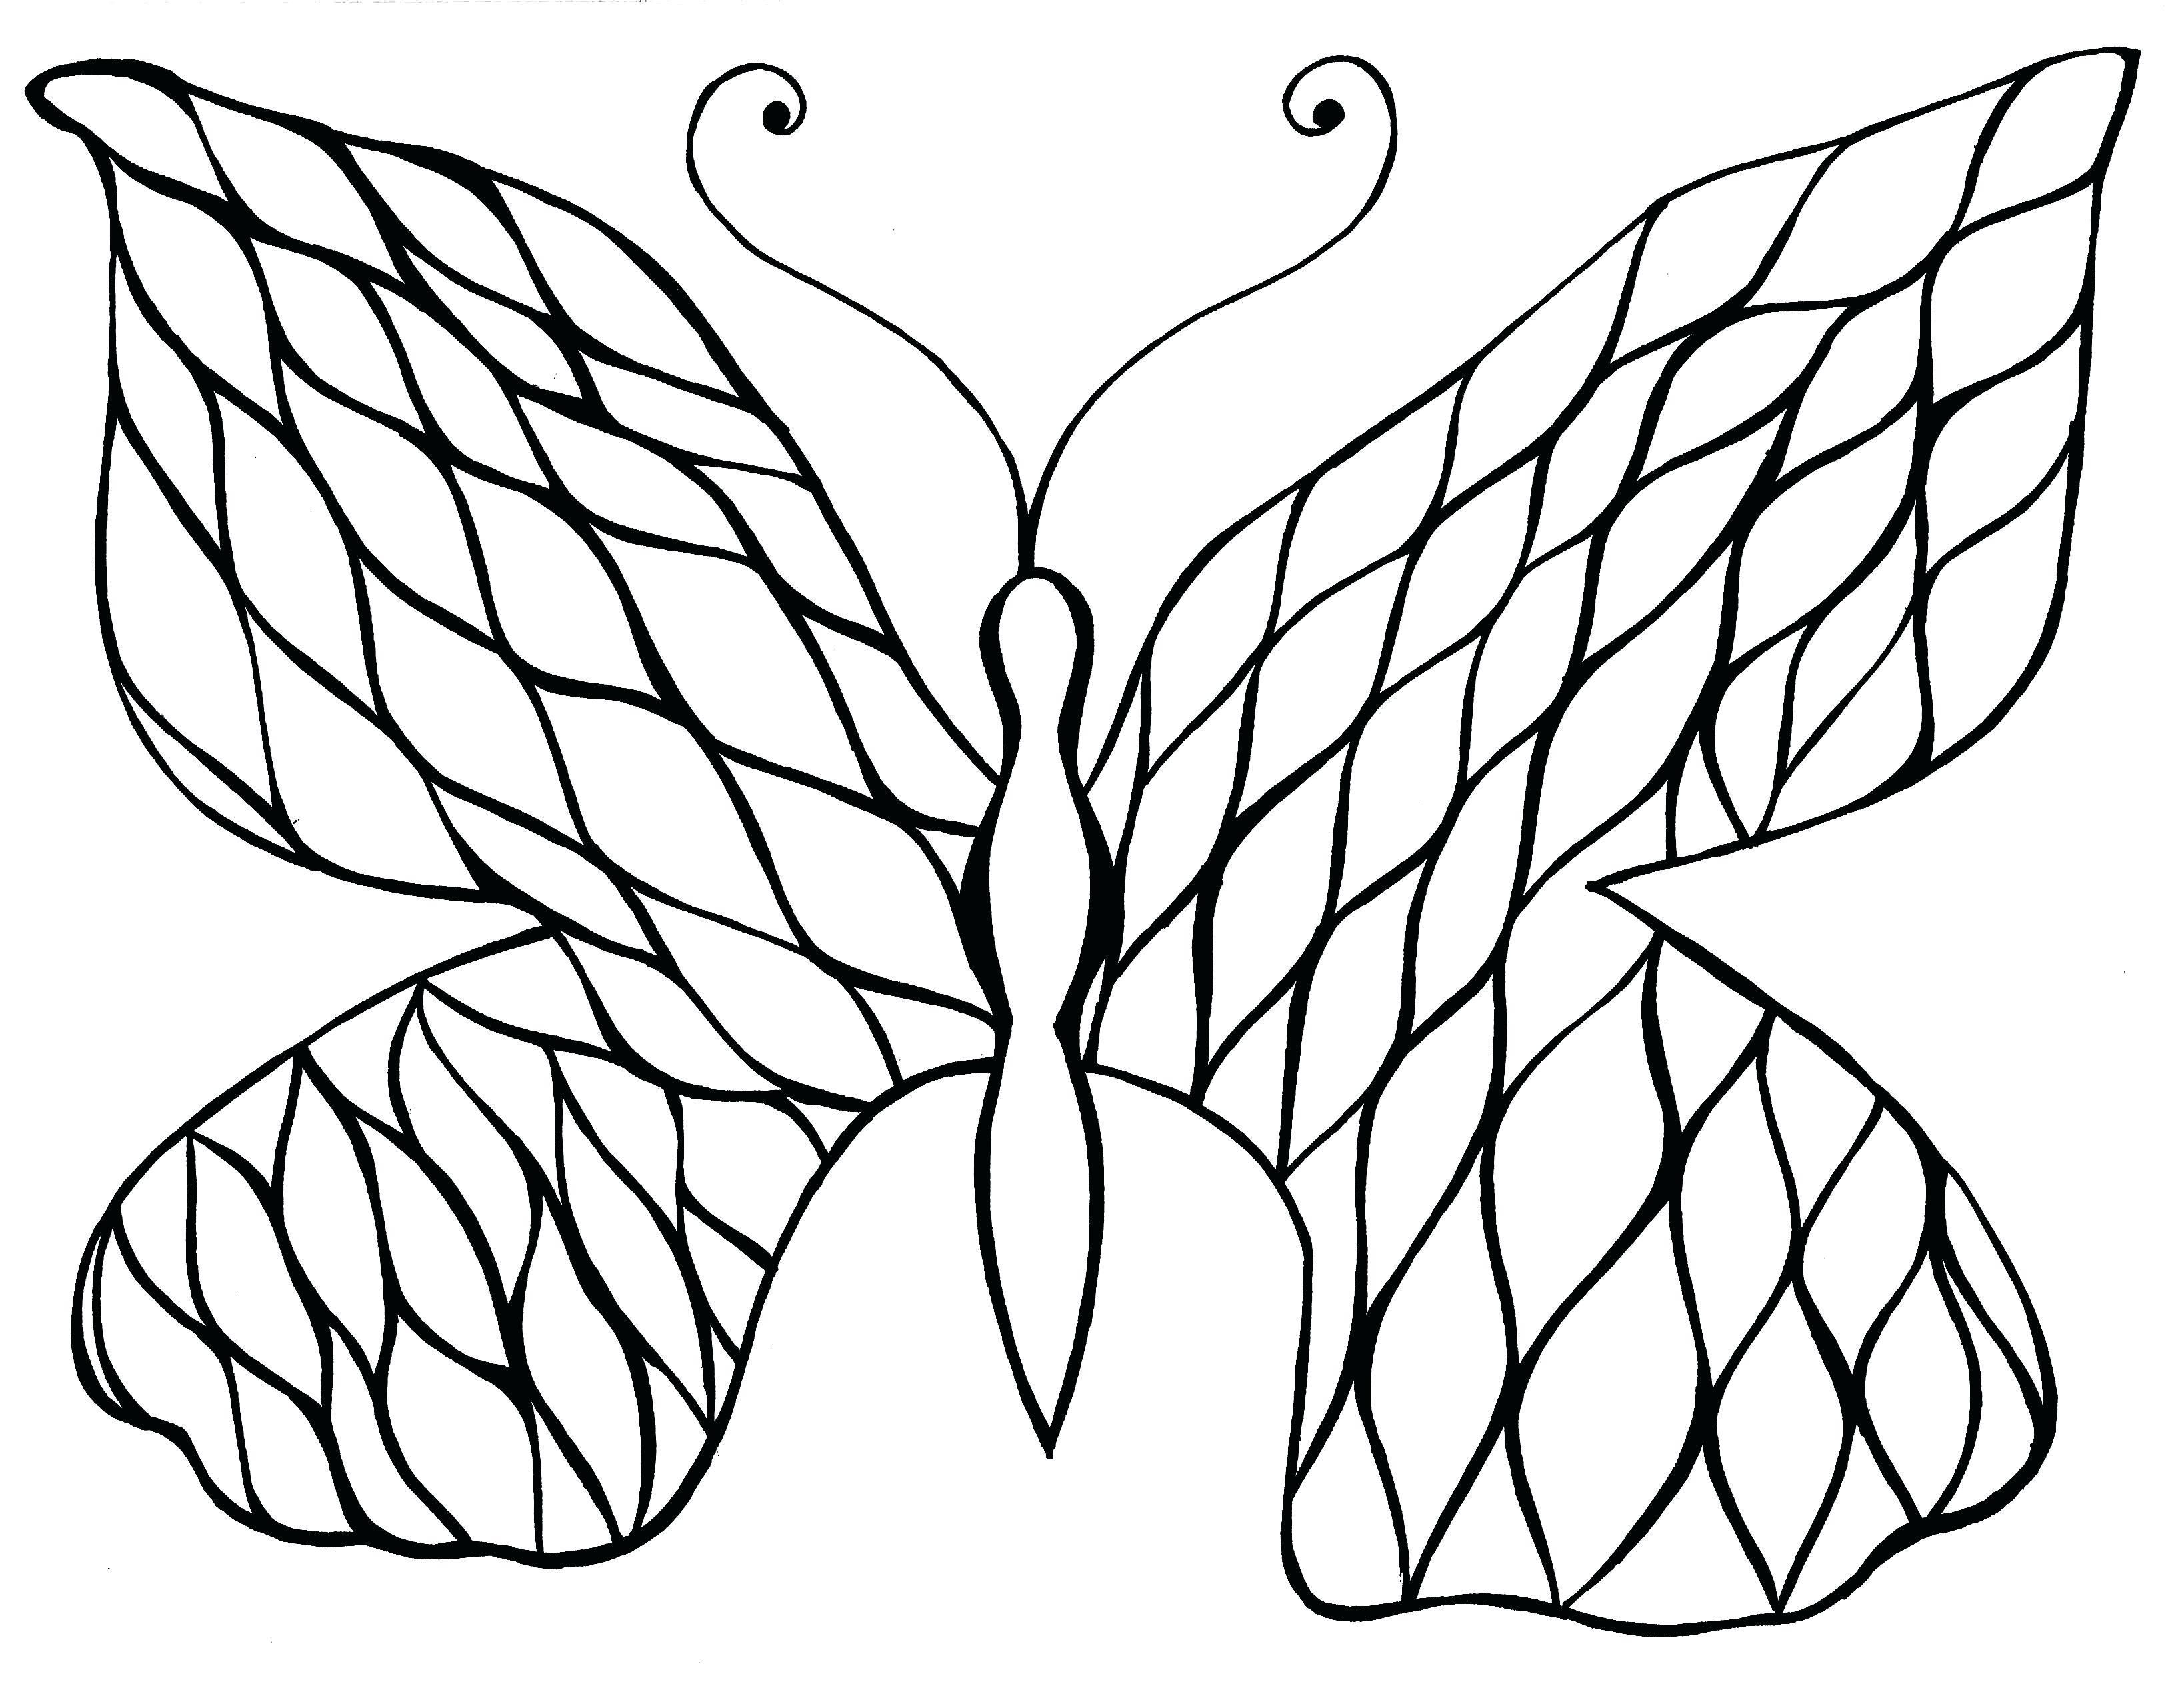 10 Butterfly Coloring In Page Butterfly Coloring Page Printable Coloring Book Insect Coloring Pages [ 2526 x 3276 Pixel ]